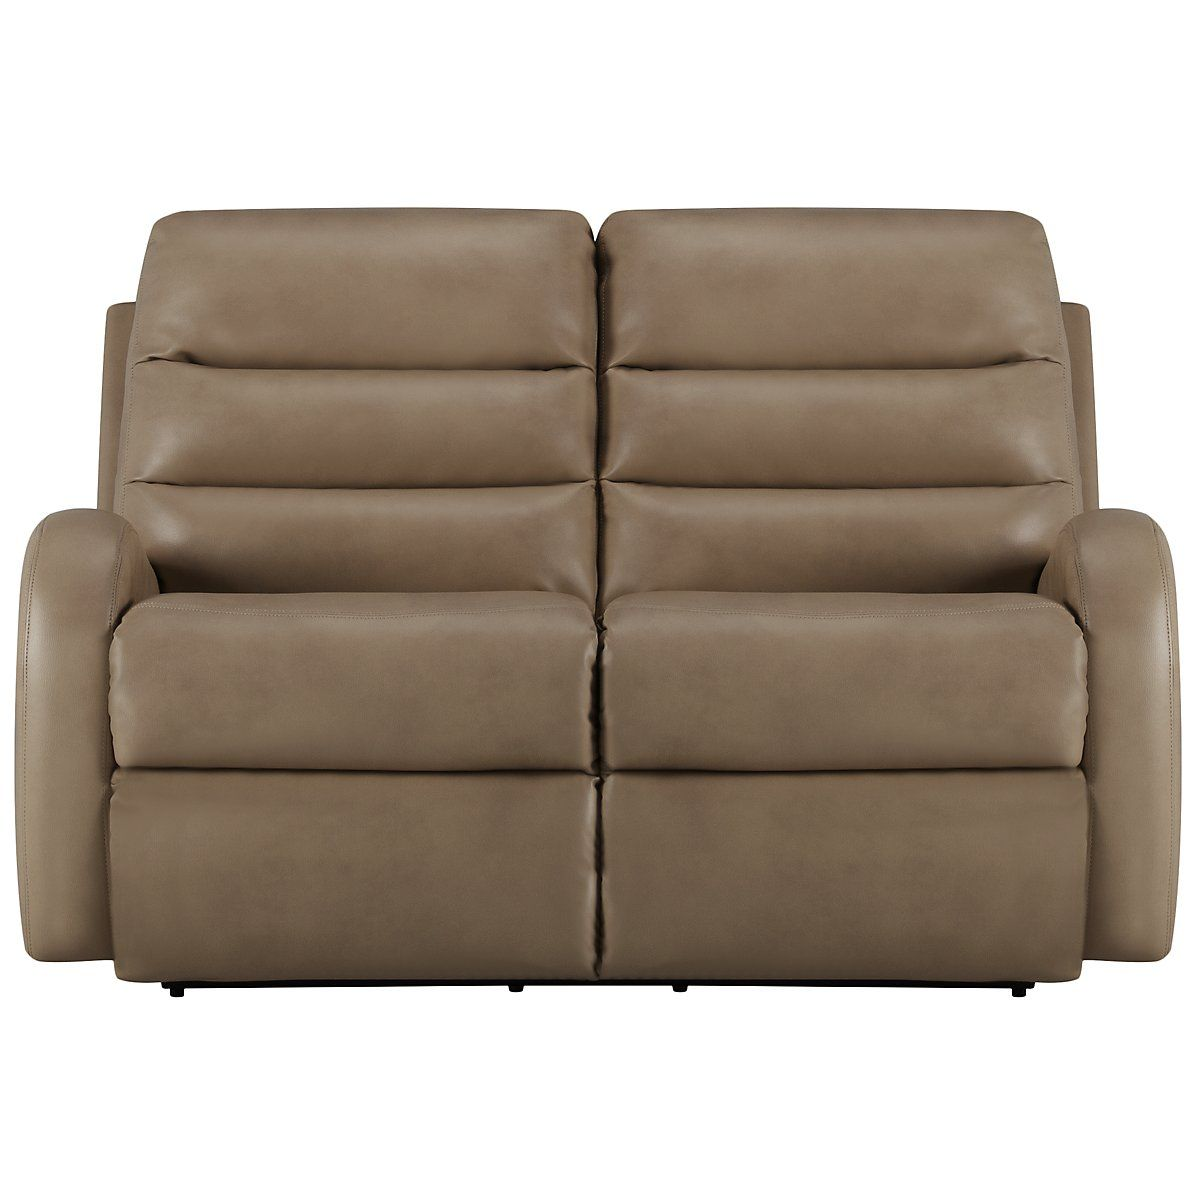 Carver beige microfiber power reclining loveseat with